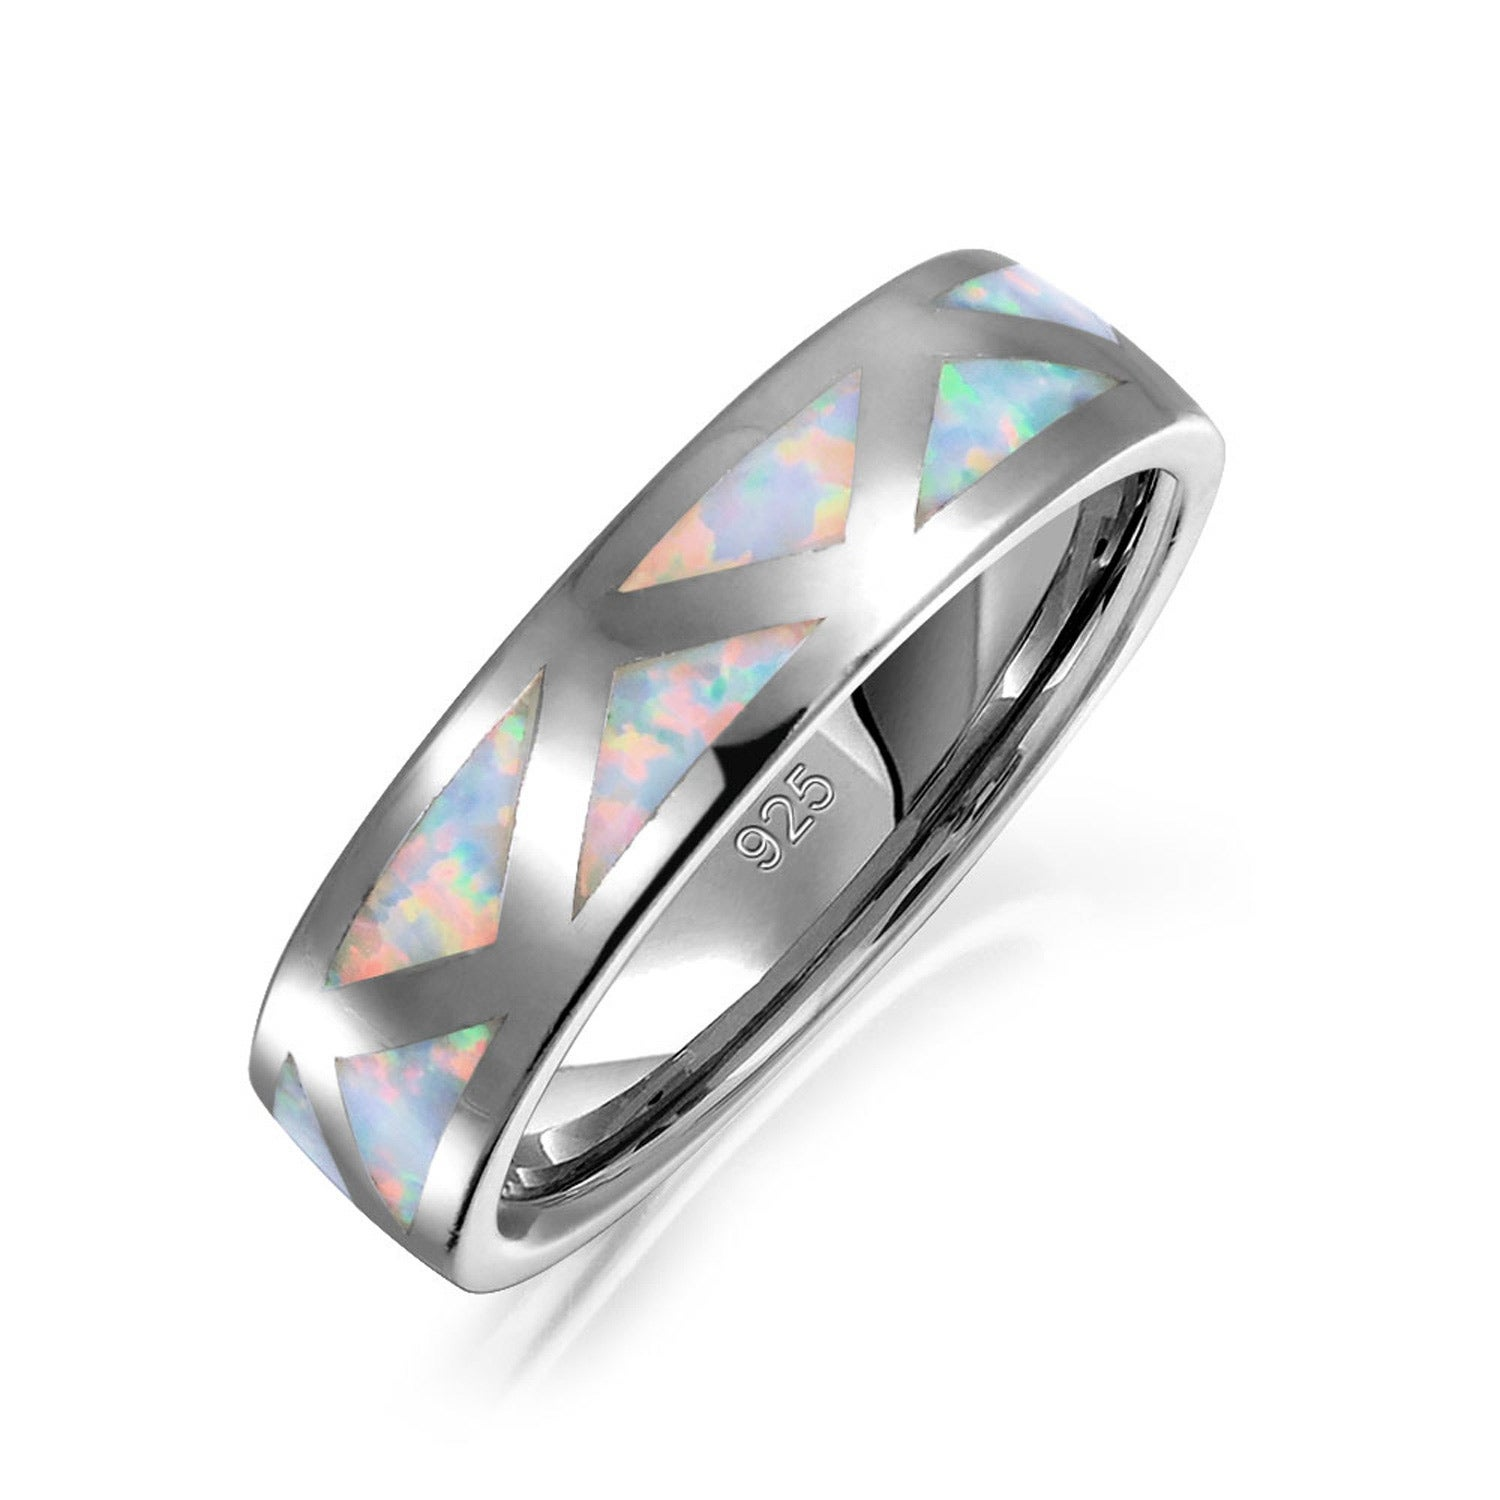 bamos wedding products rings birthstone rainbow october opal ring jewelry